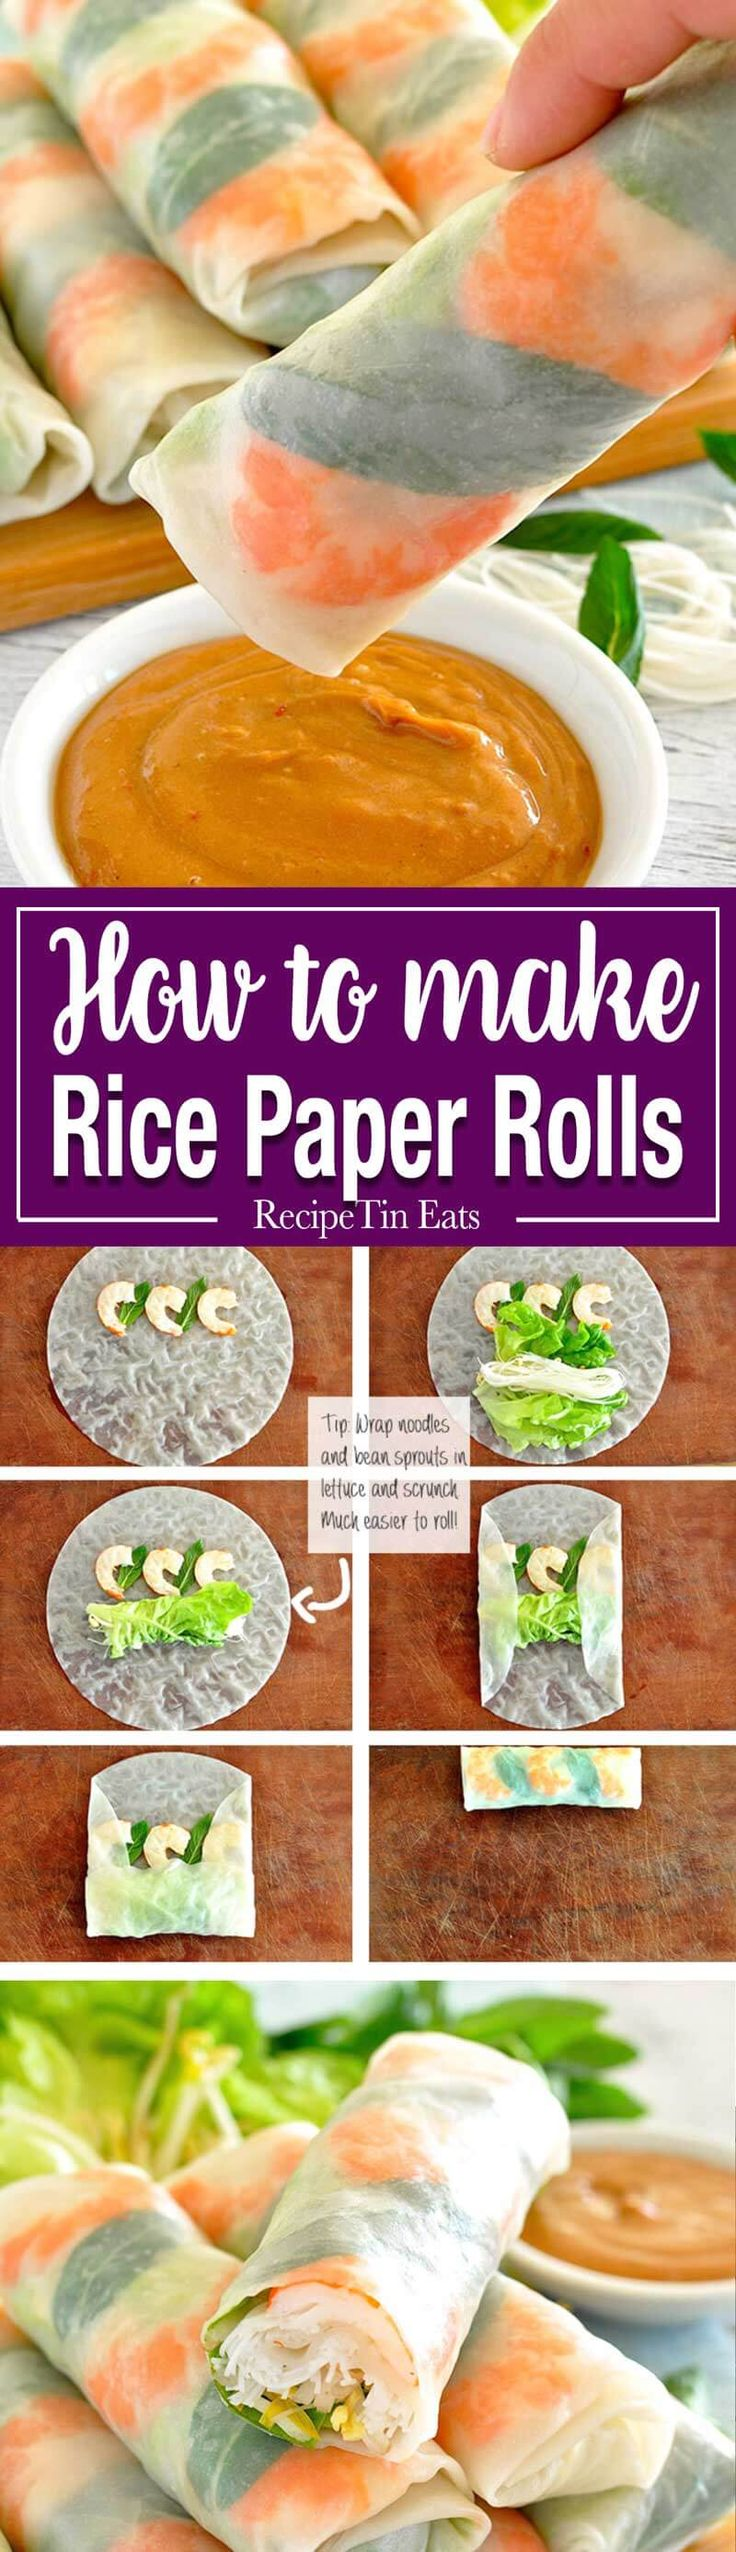 rice paper recipes Place vermicelli in a large bowl, pour over enough boiling water to cover completely and stand until vermicelli are tender strain, drain well, then cut into rough 10cm lengths with scissors and place in a bowl.